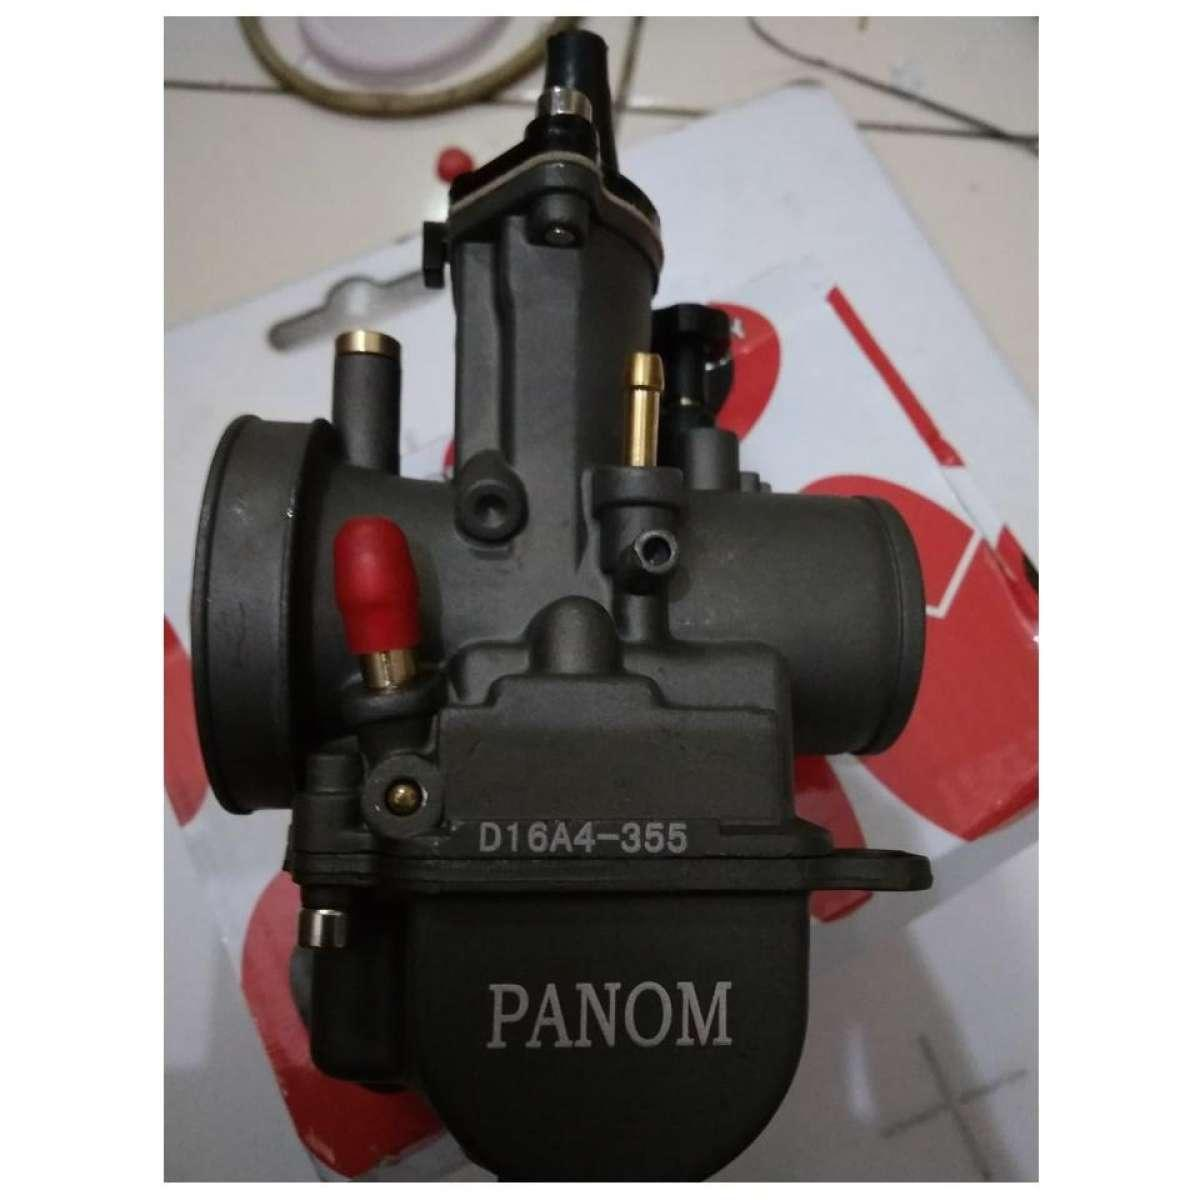 Karburator Pwk 28 Panom Black Series